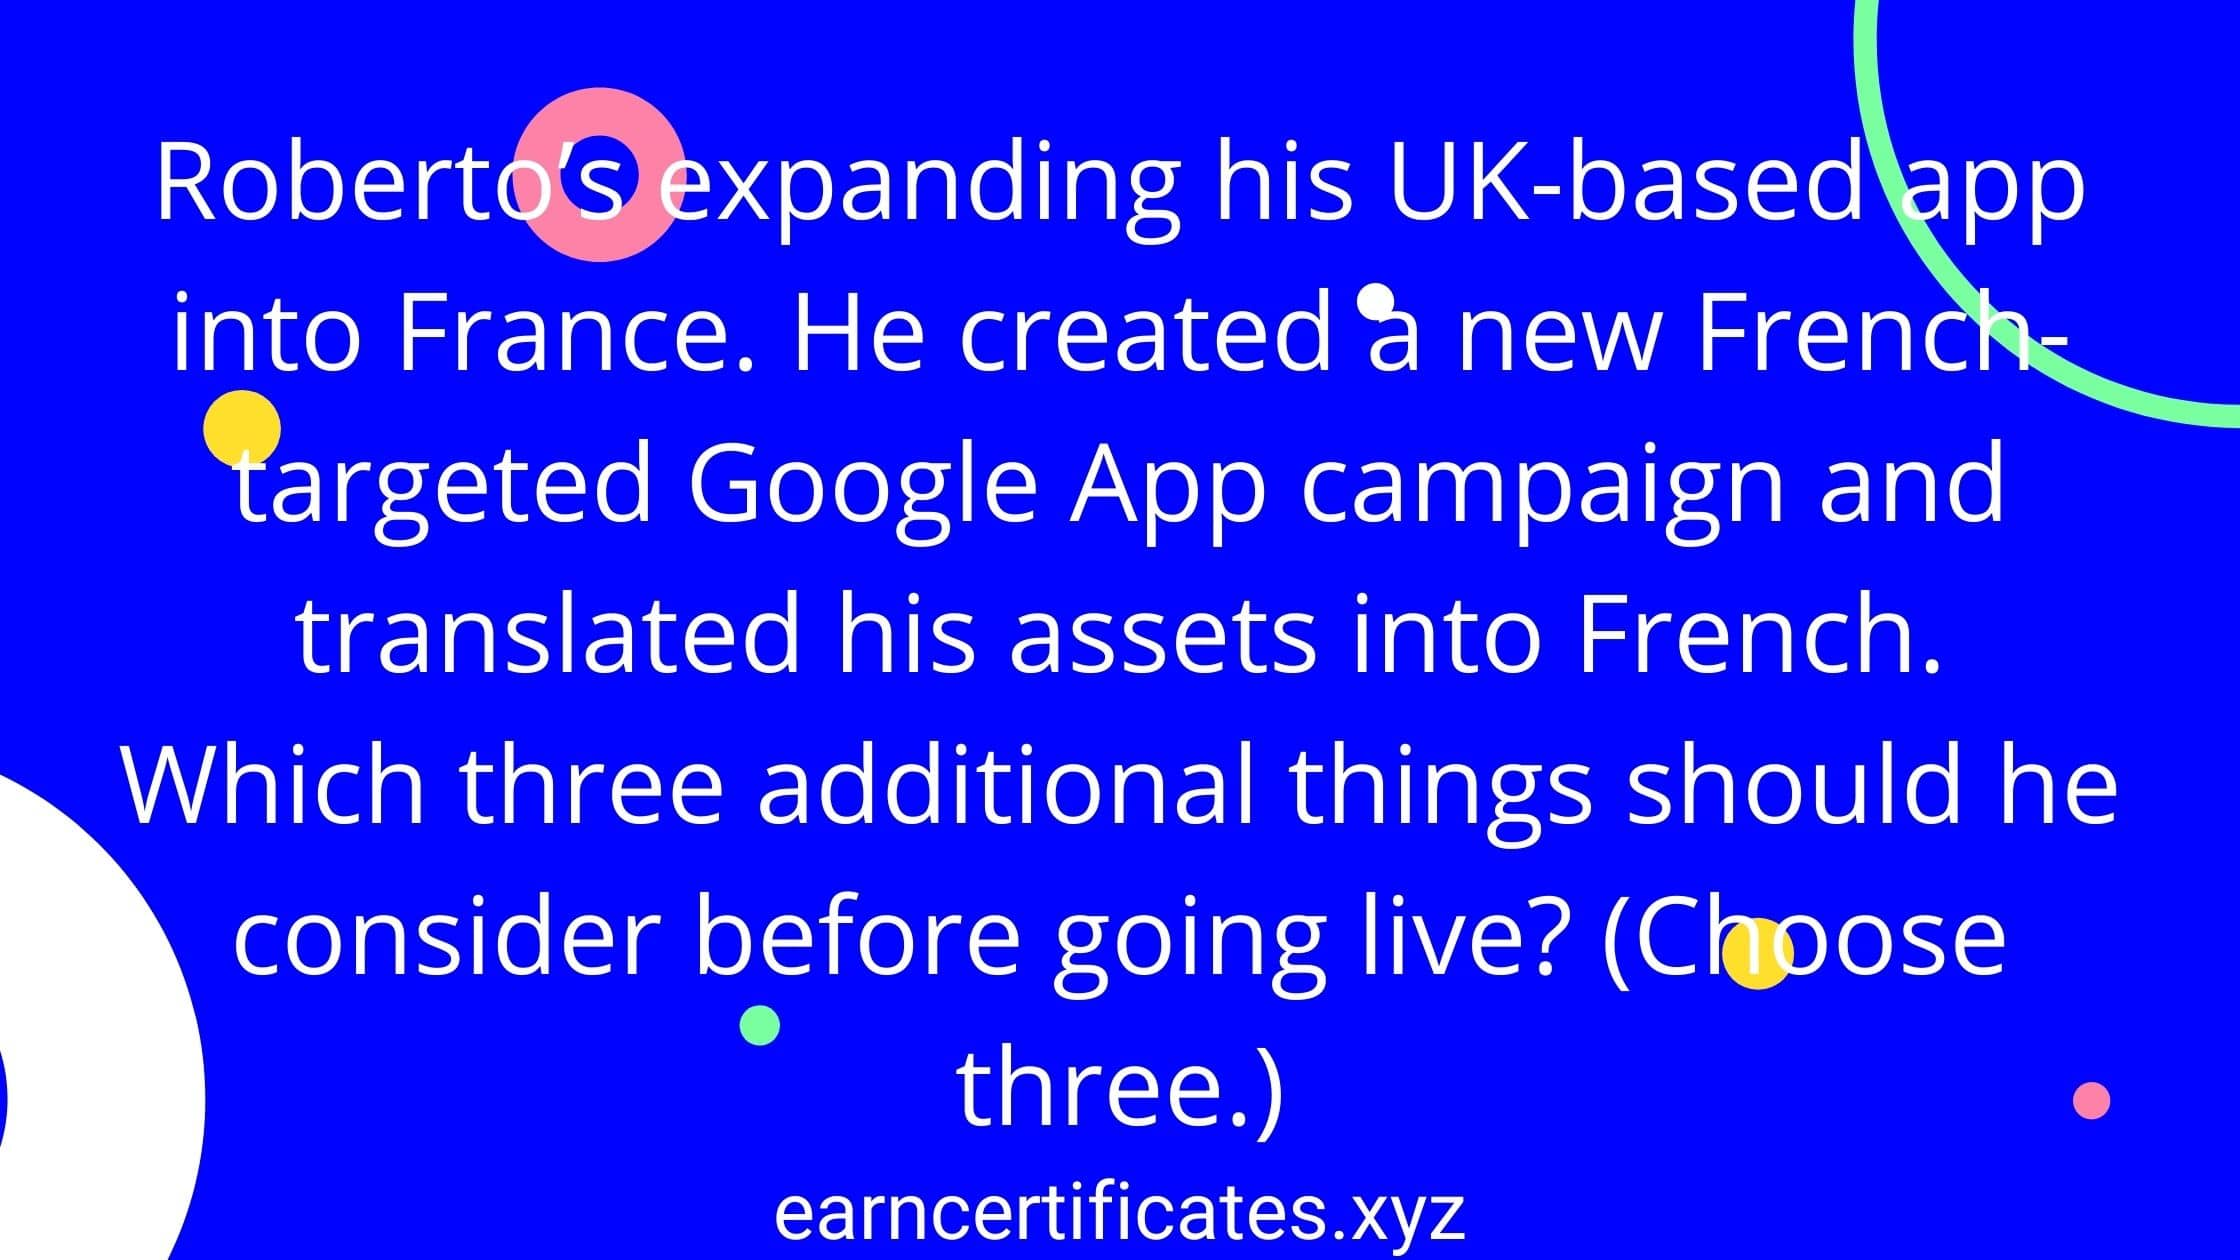 Roberto's expanding his UK-based app into France. He created a new French-targeted Google App campaign and translated his assets into French. Which three additional things should he consider before going live? (Choose three.)